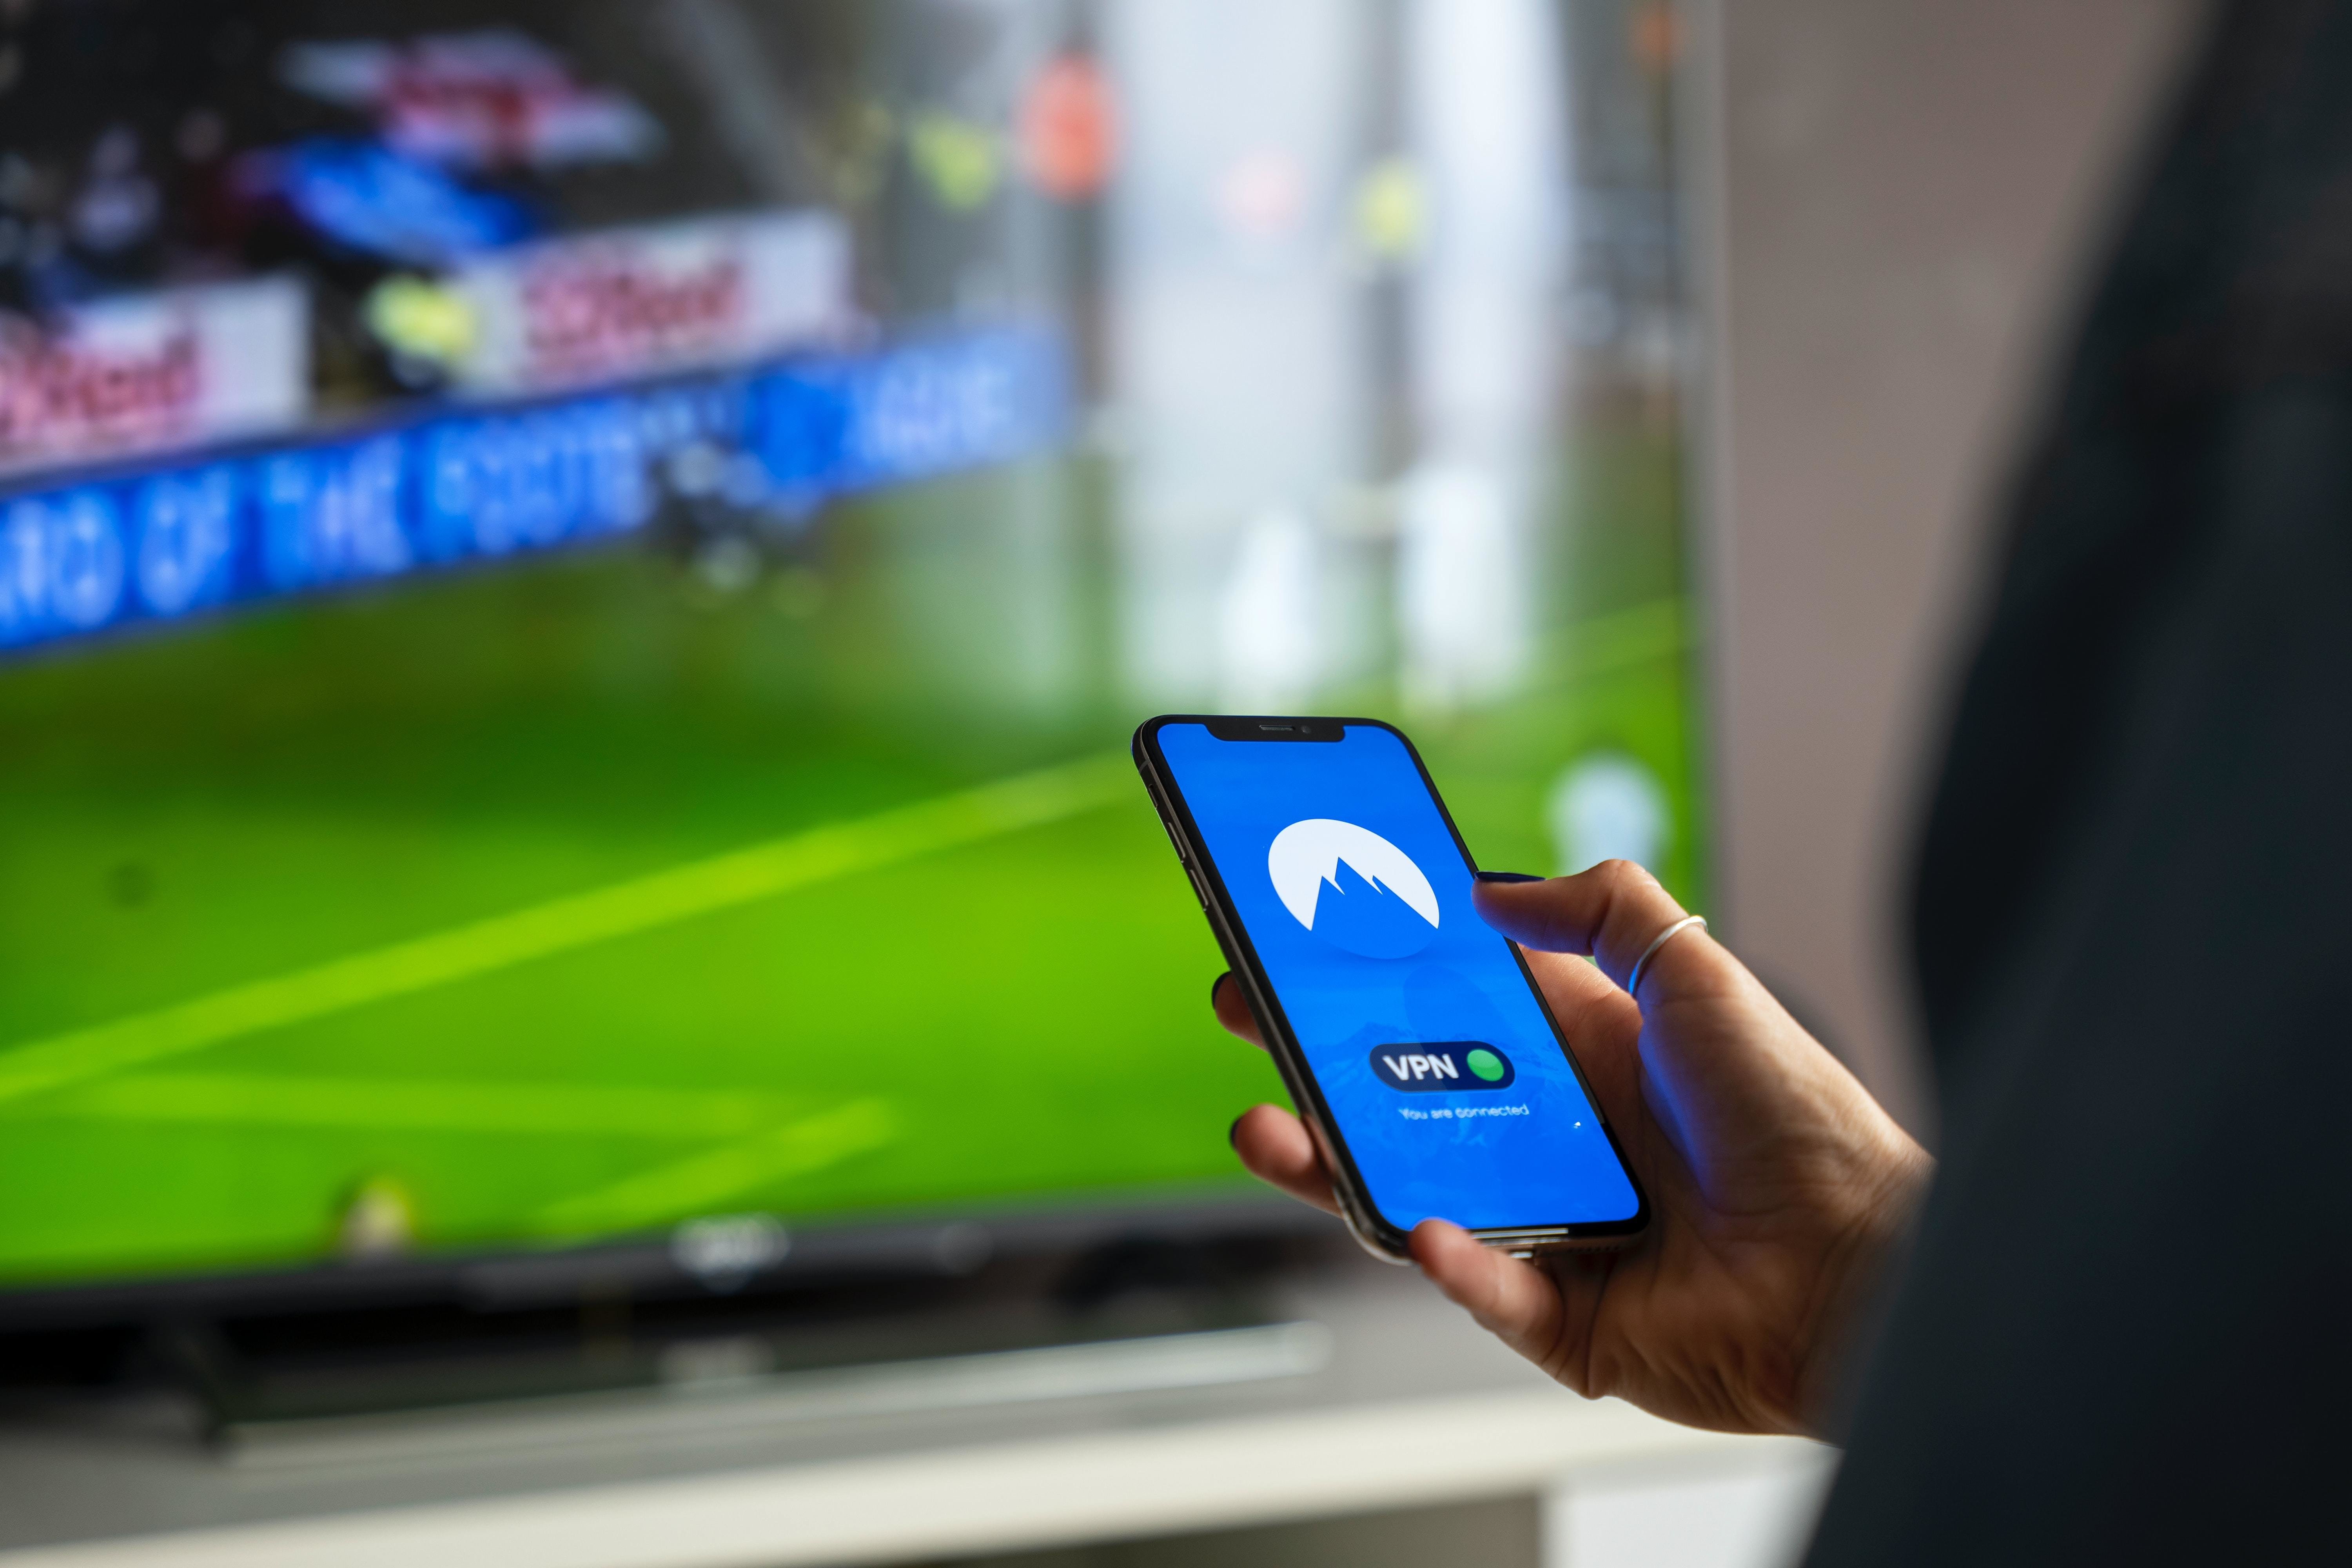 A person using a VPN on a mobile phone in front of a football game on a large TV screen.